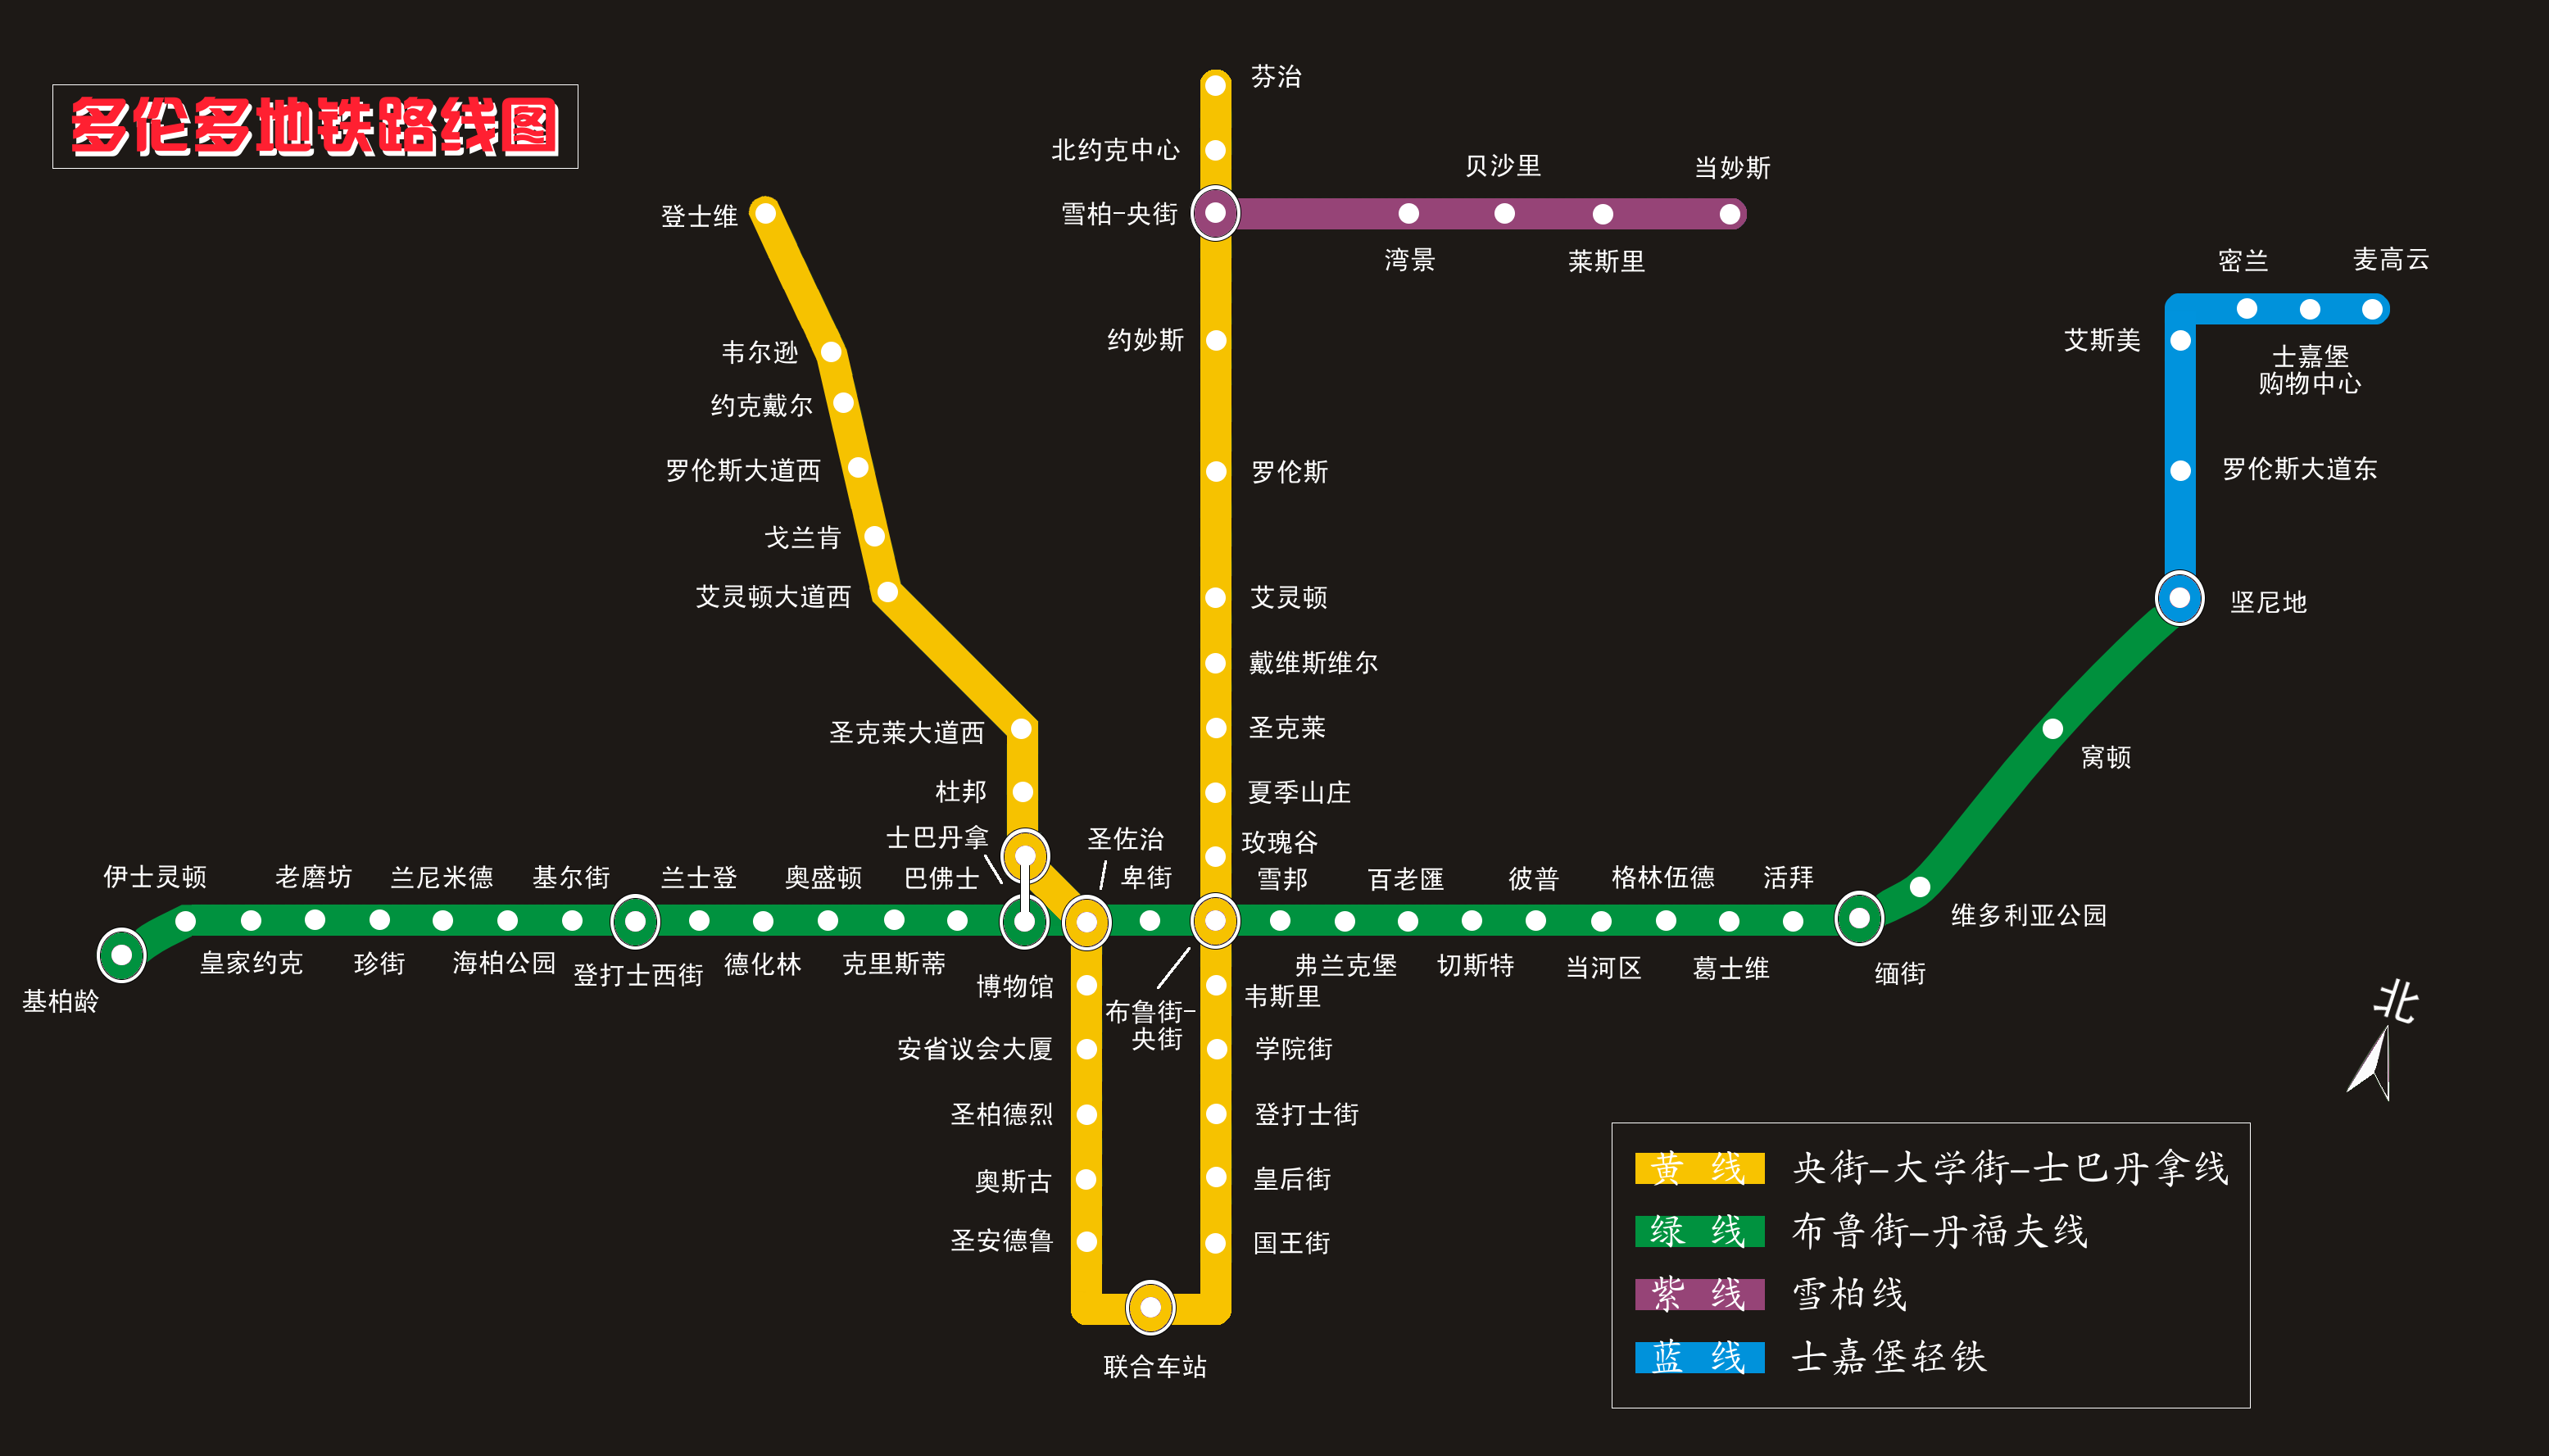 Toronto subway and RT